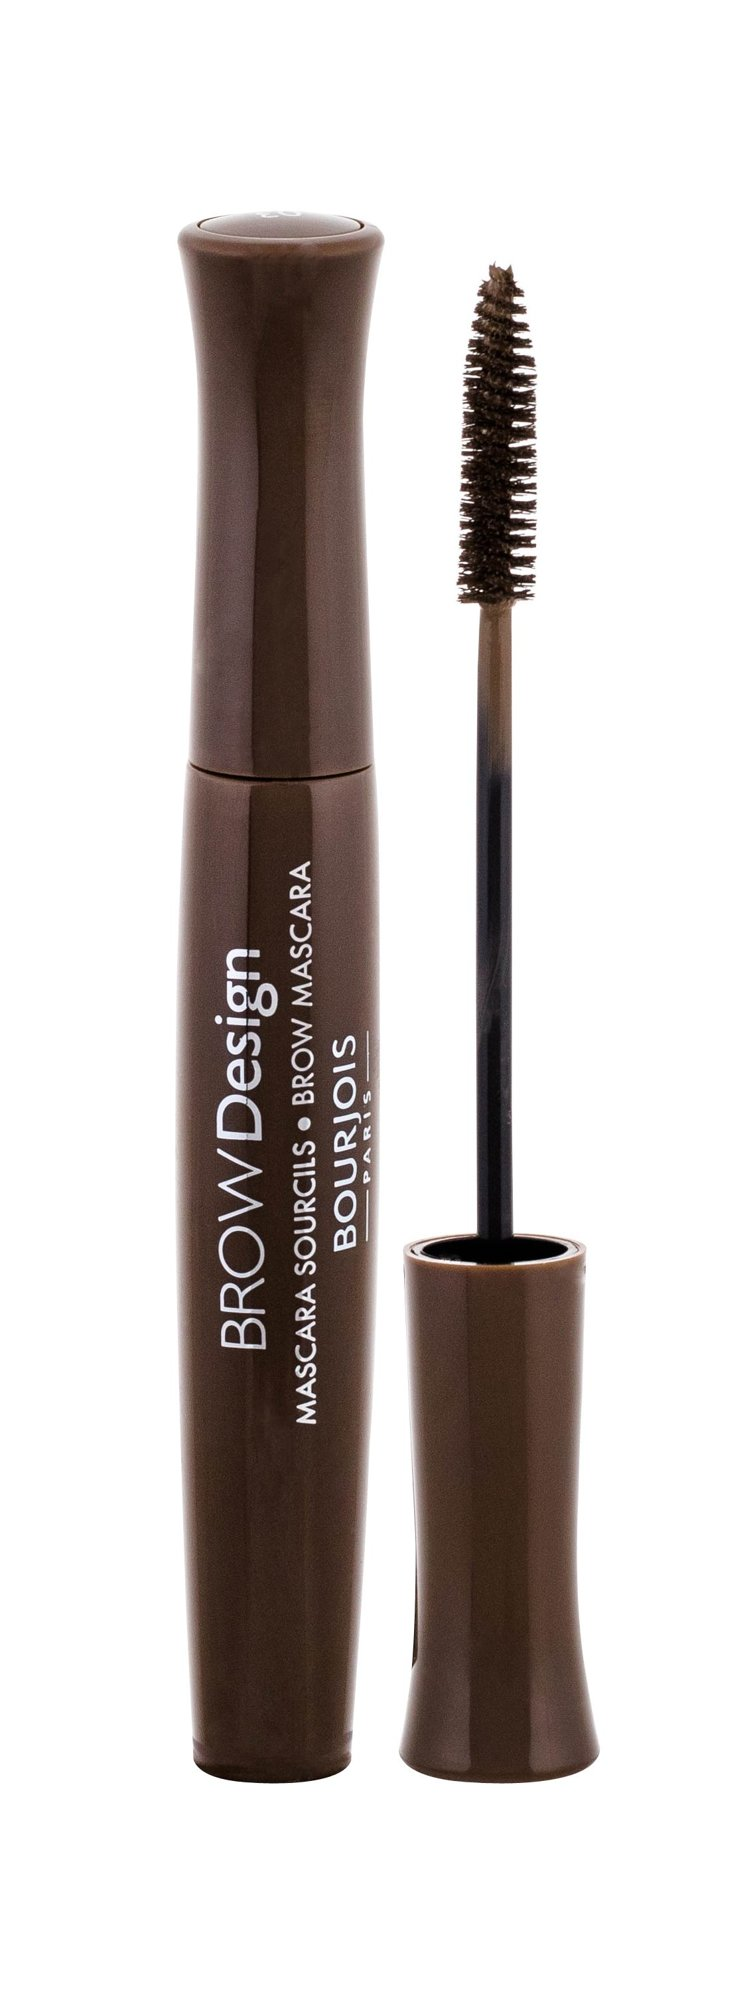 BOURJOIS Paris Brow Design Mascara Cosmetic 6ml 03 Chatain